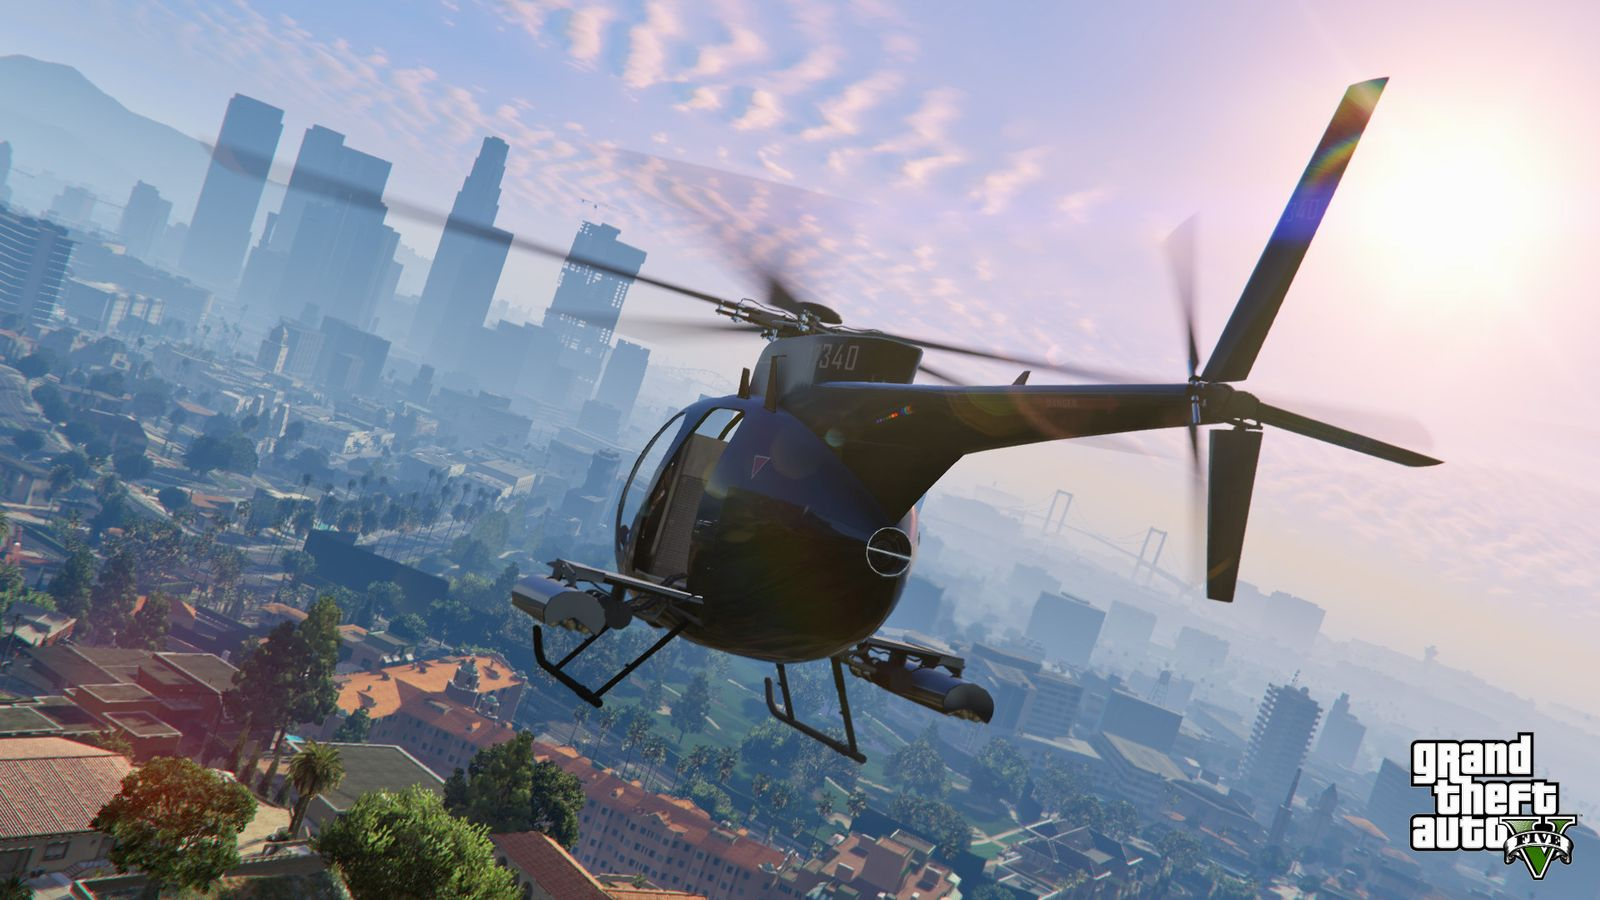 GTA 5 best hd Wallpapers